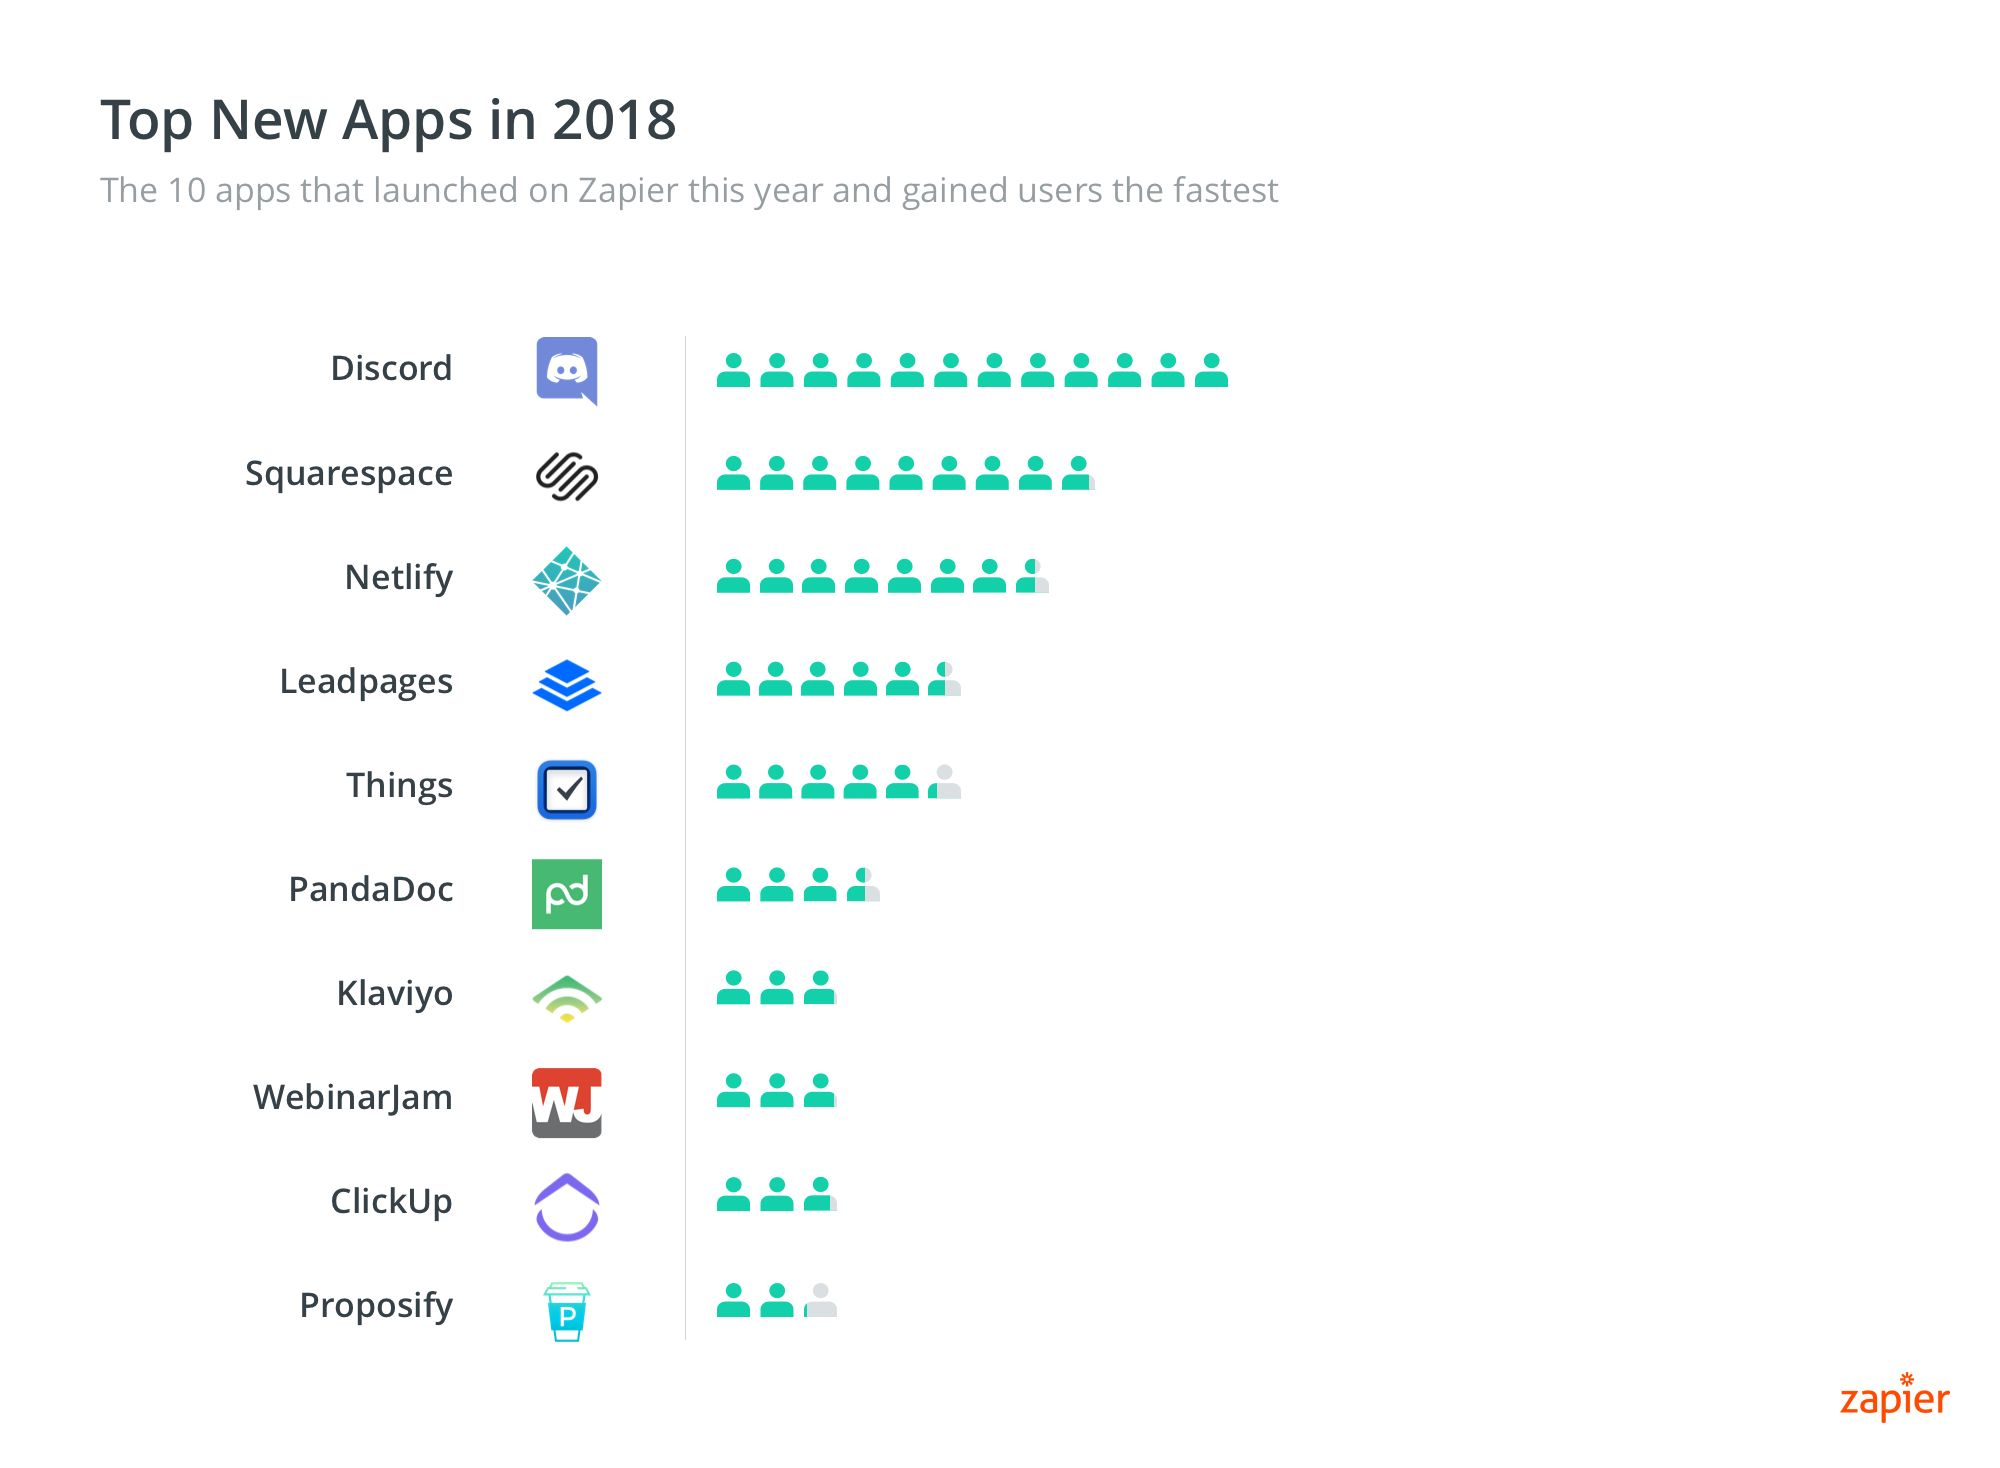 Fastest Growing New Apps 2018